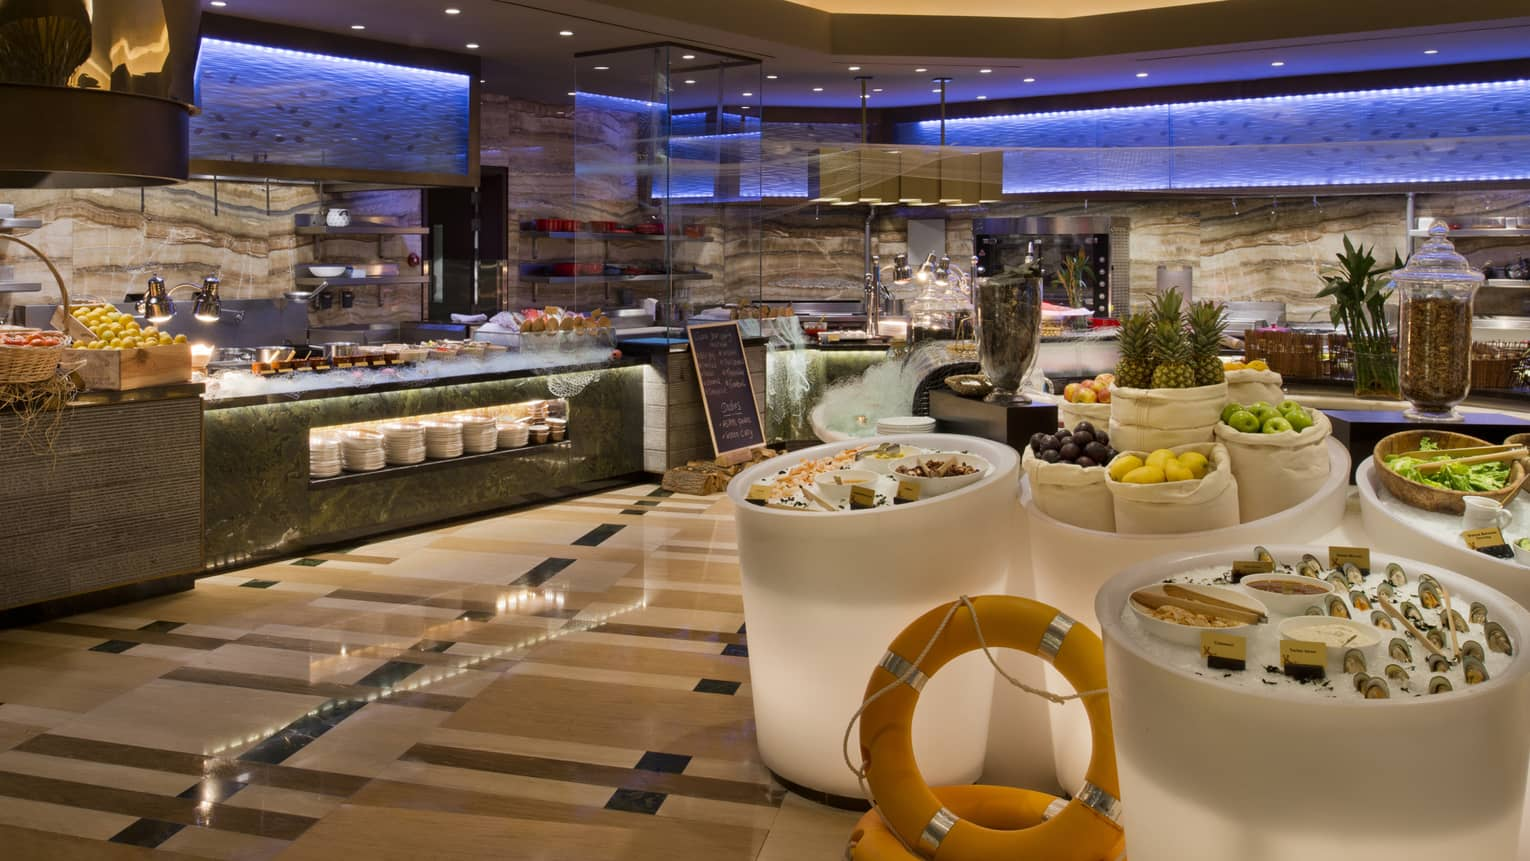 Bahrain Bay Kitchen buffet stations, large white bins of ice with seafood, fresh fruit, salad